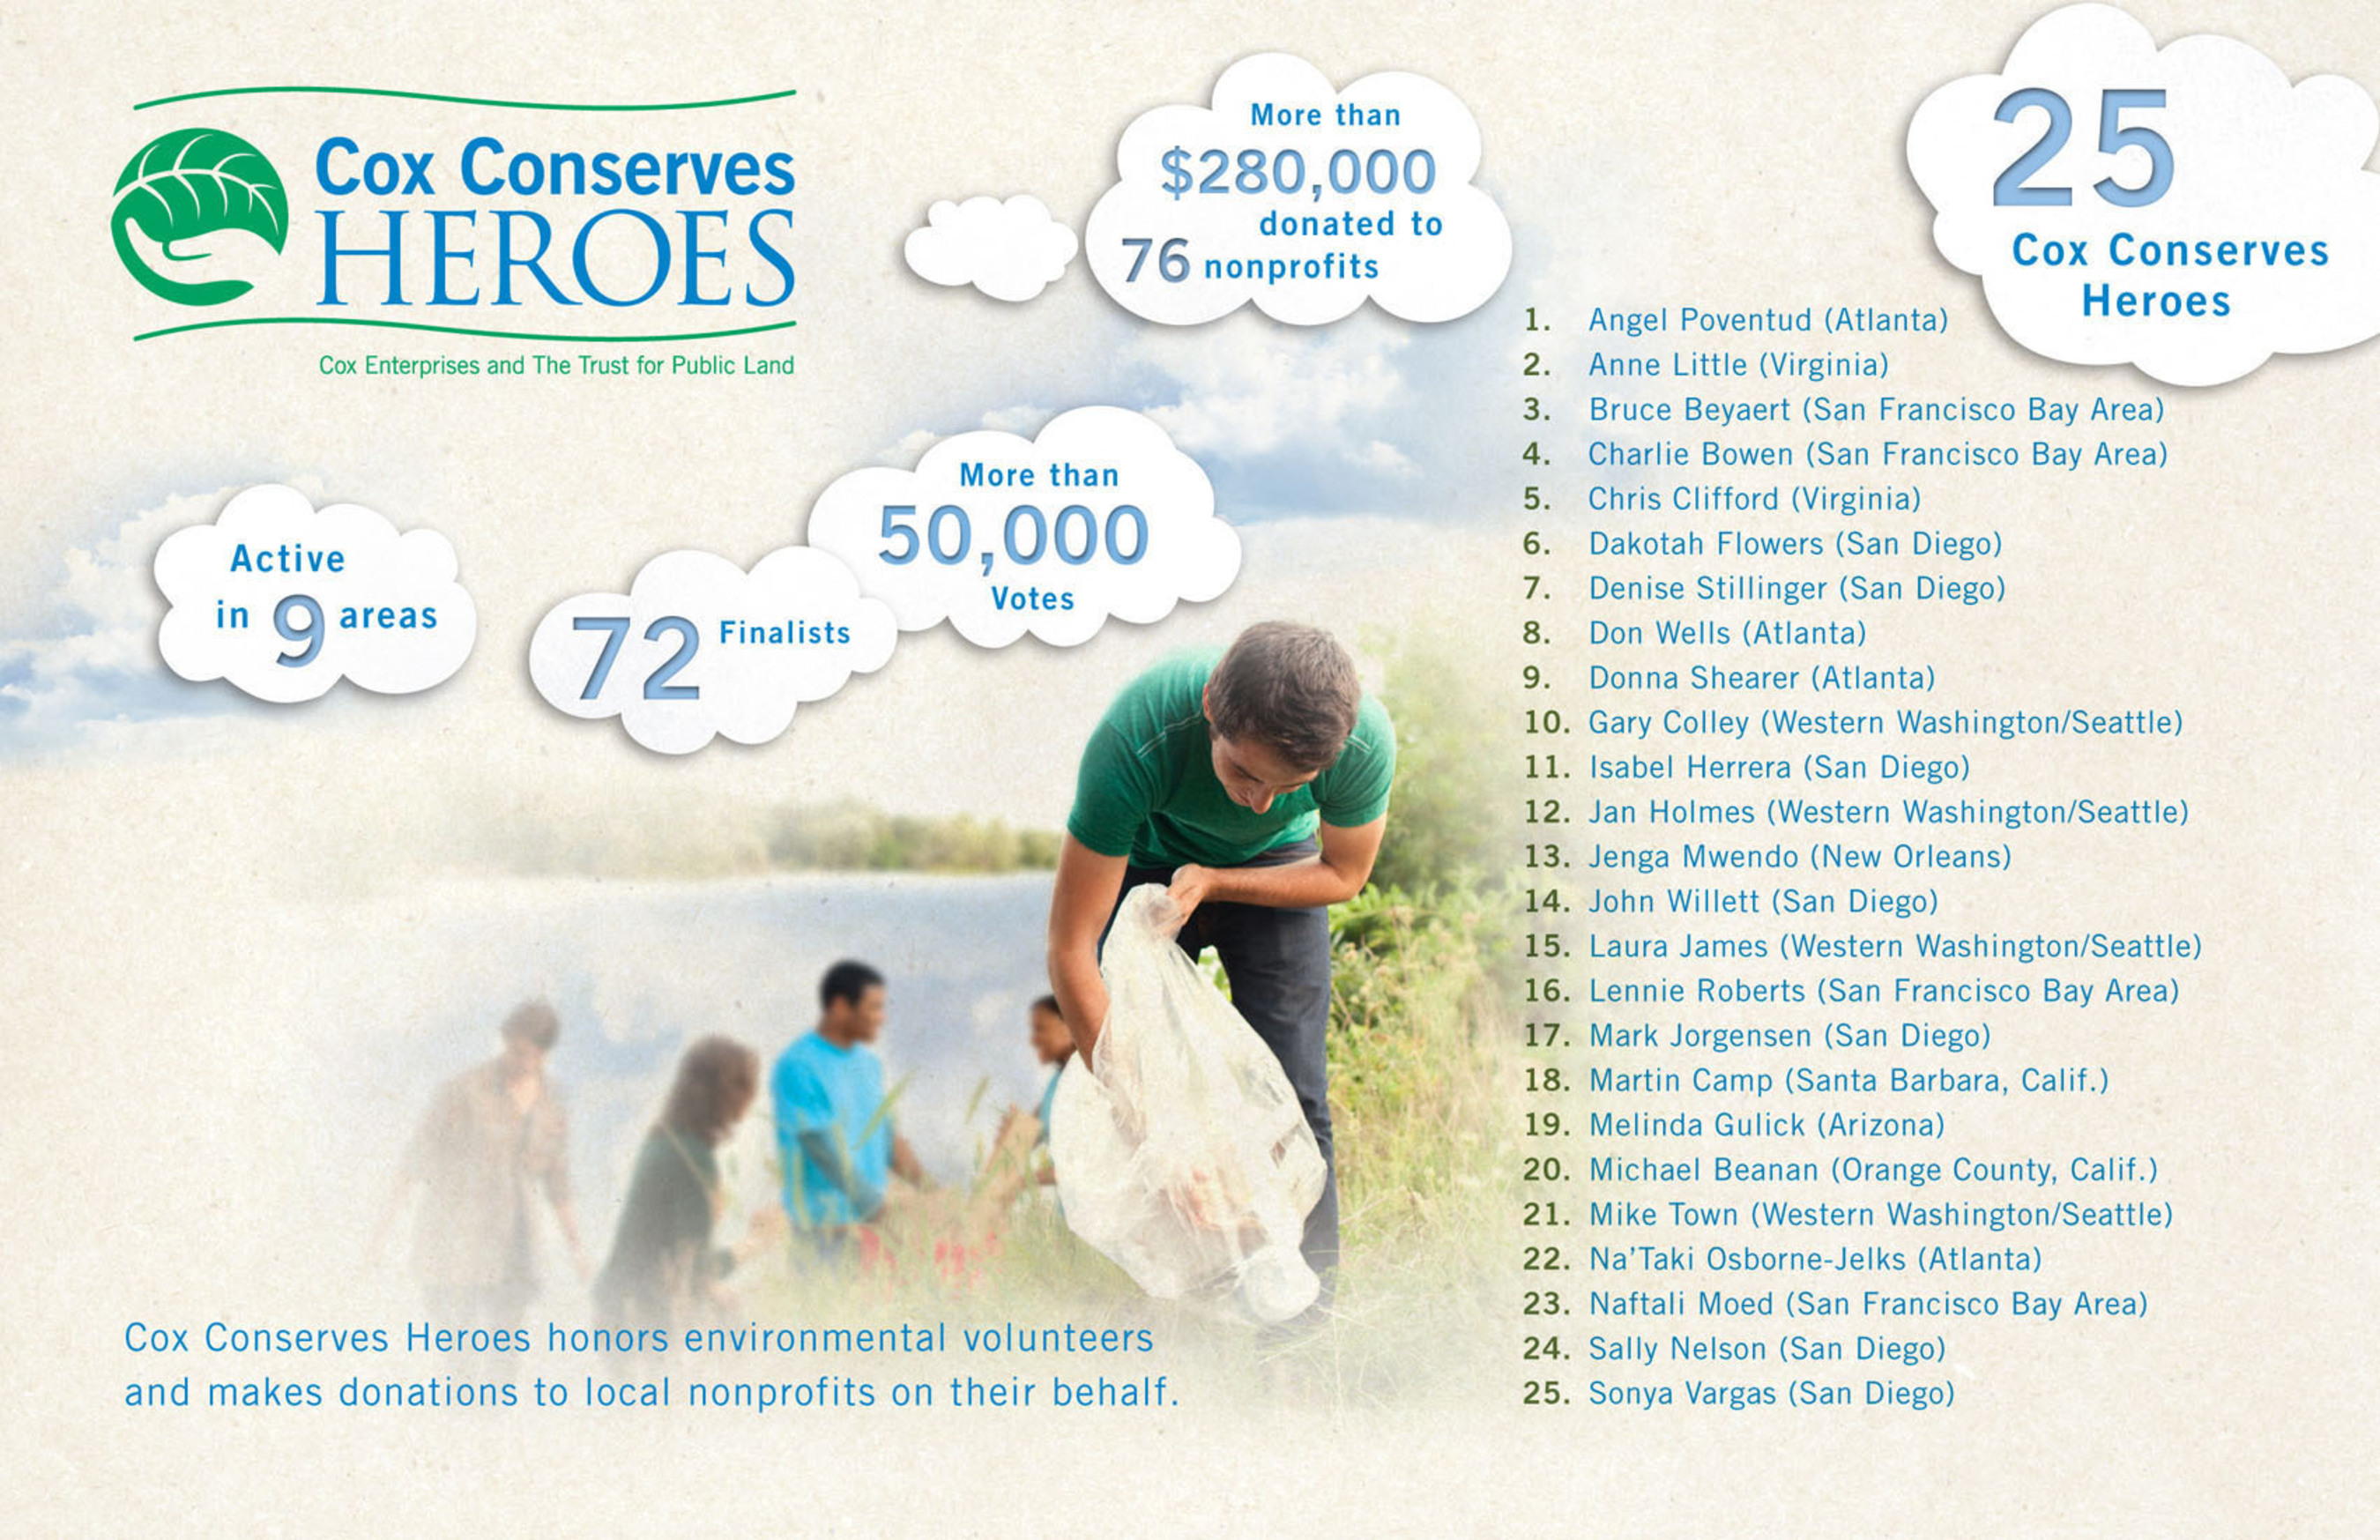 Created by The Trust for Public Land and Cox Enterprises, Cox Conserves Heroes honors environmental volunteers ...